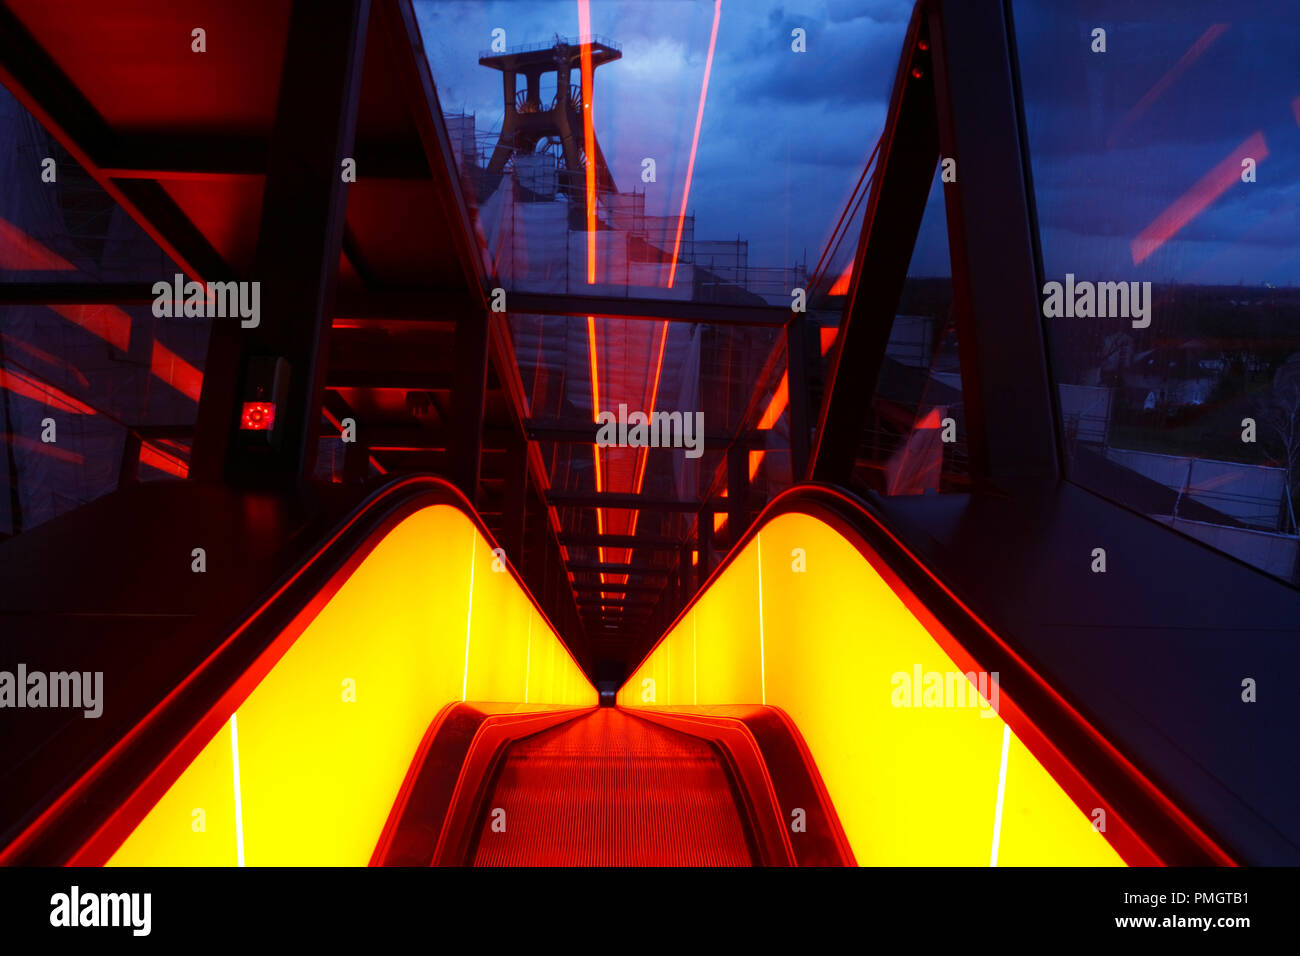 Escalator to the former coal washing on the colliery Zollverein reminds of glowing steel on a rolling street. At the beginning of twilight, the building lighting of the UNESCO World Cultural Heritage begins. - Stock Image